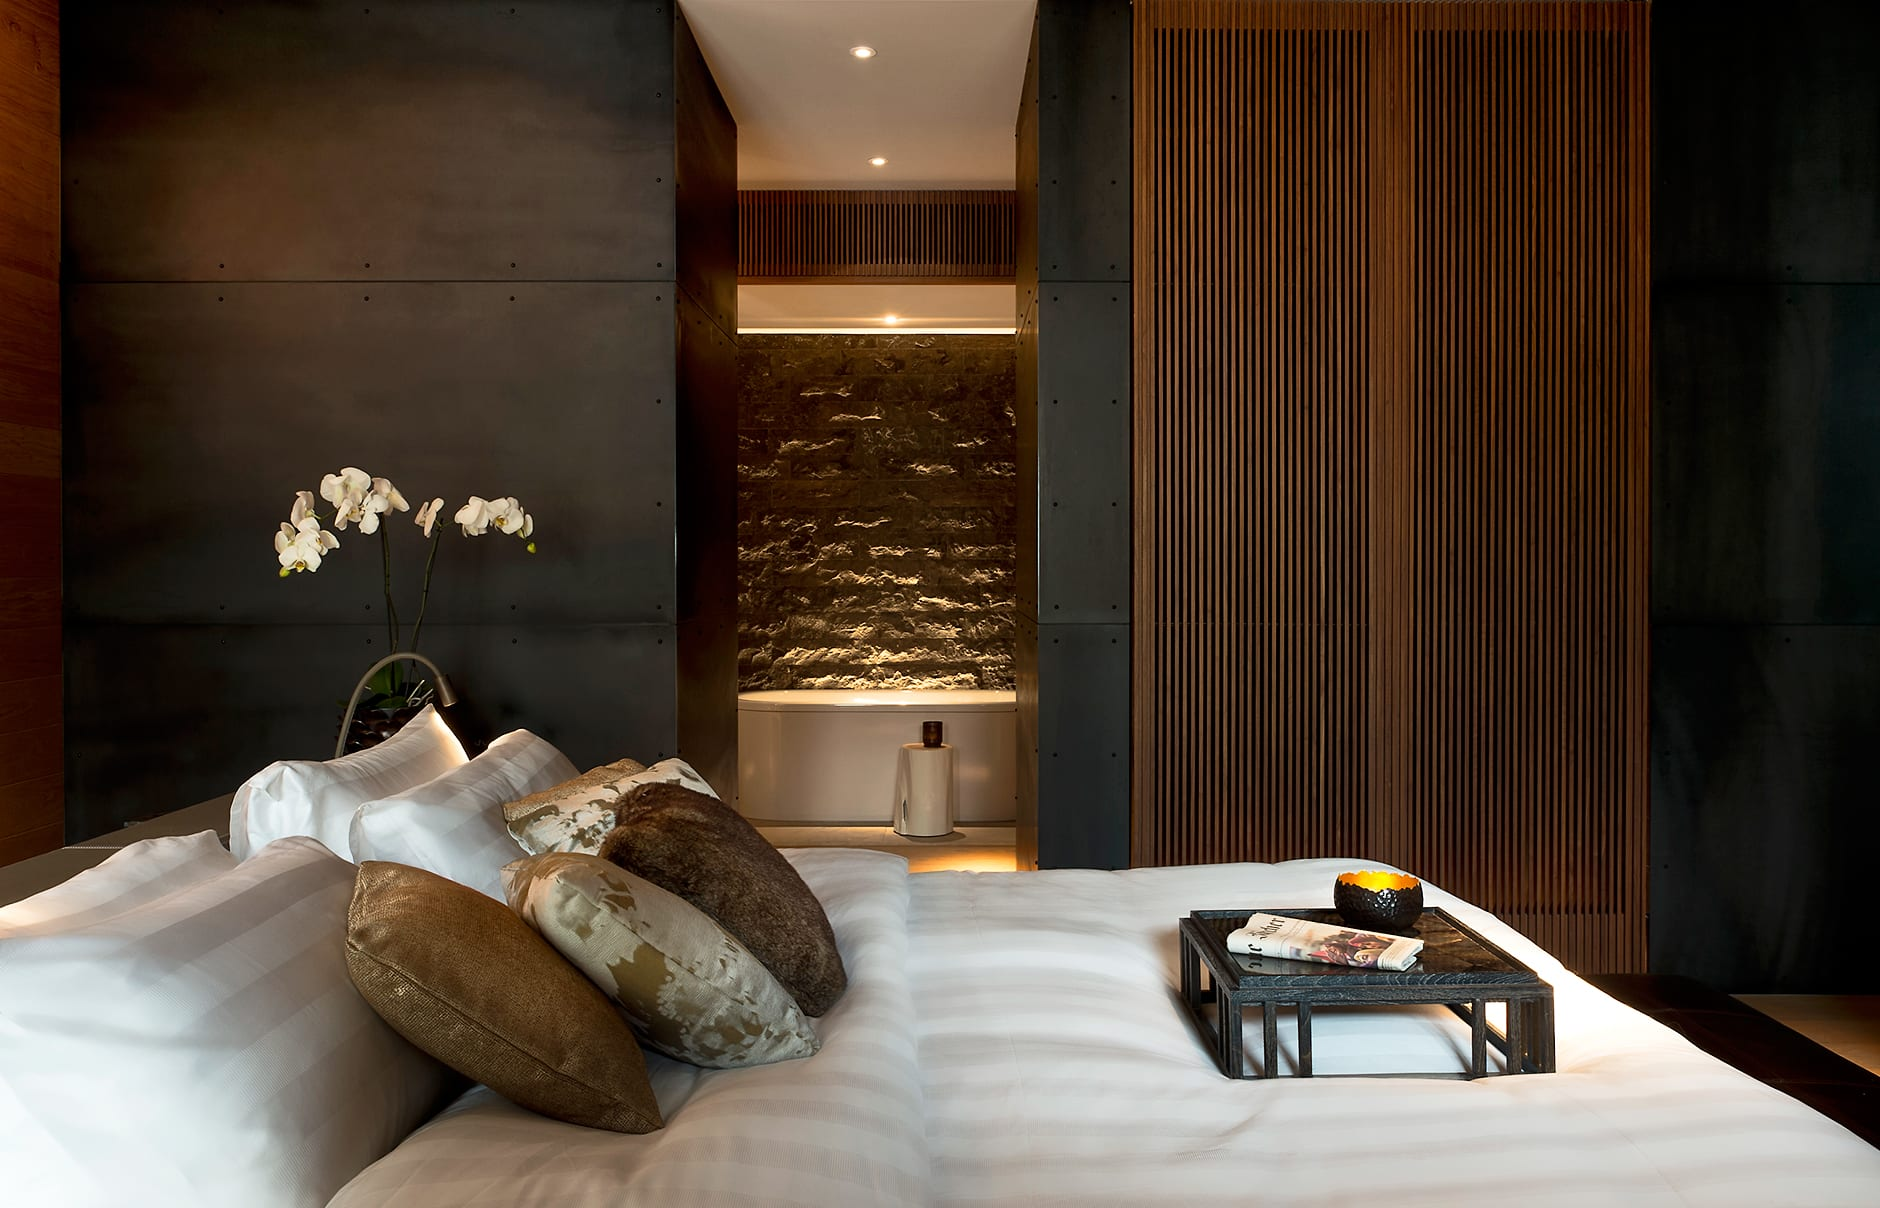 Deluxe Room. The Chedi Andermatt, Switzerland. © GHM